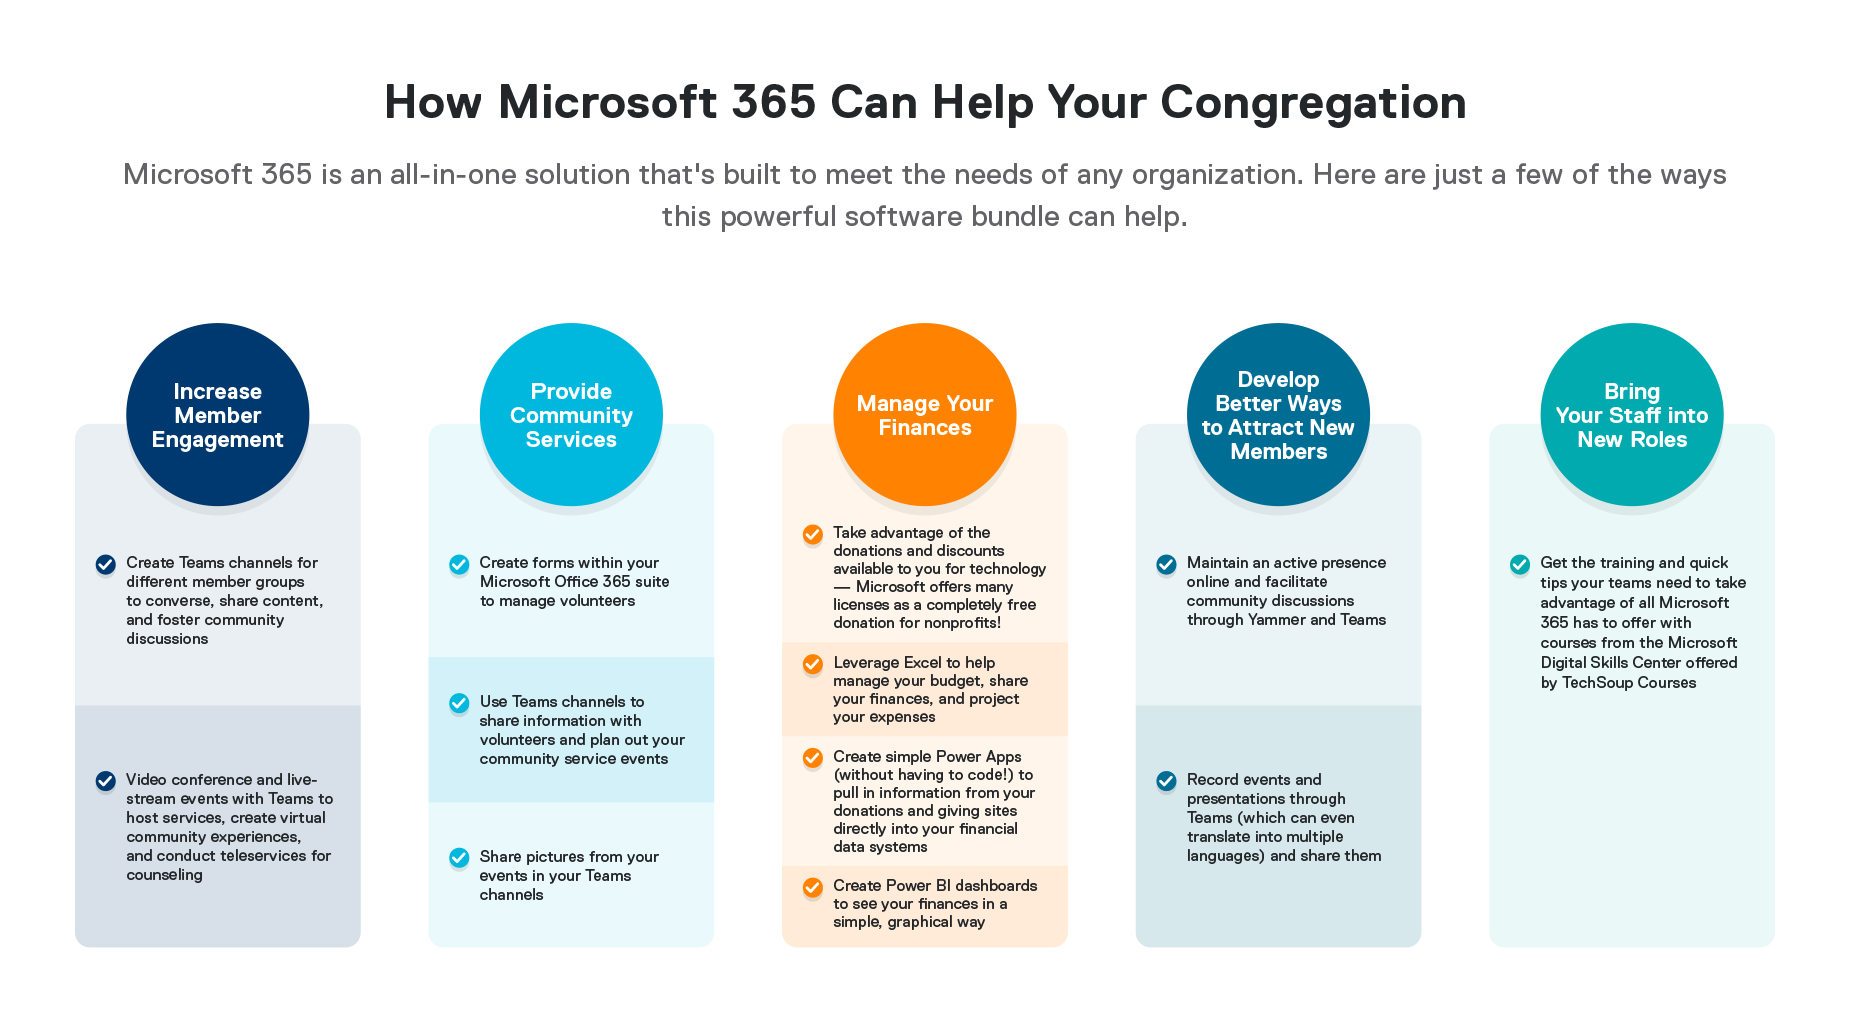 infographic showing how congregations can use Microsoft 365 to increase member engagement, provide community services, manage finances, attract new members, and bring staff into new roles